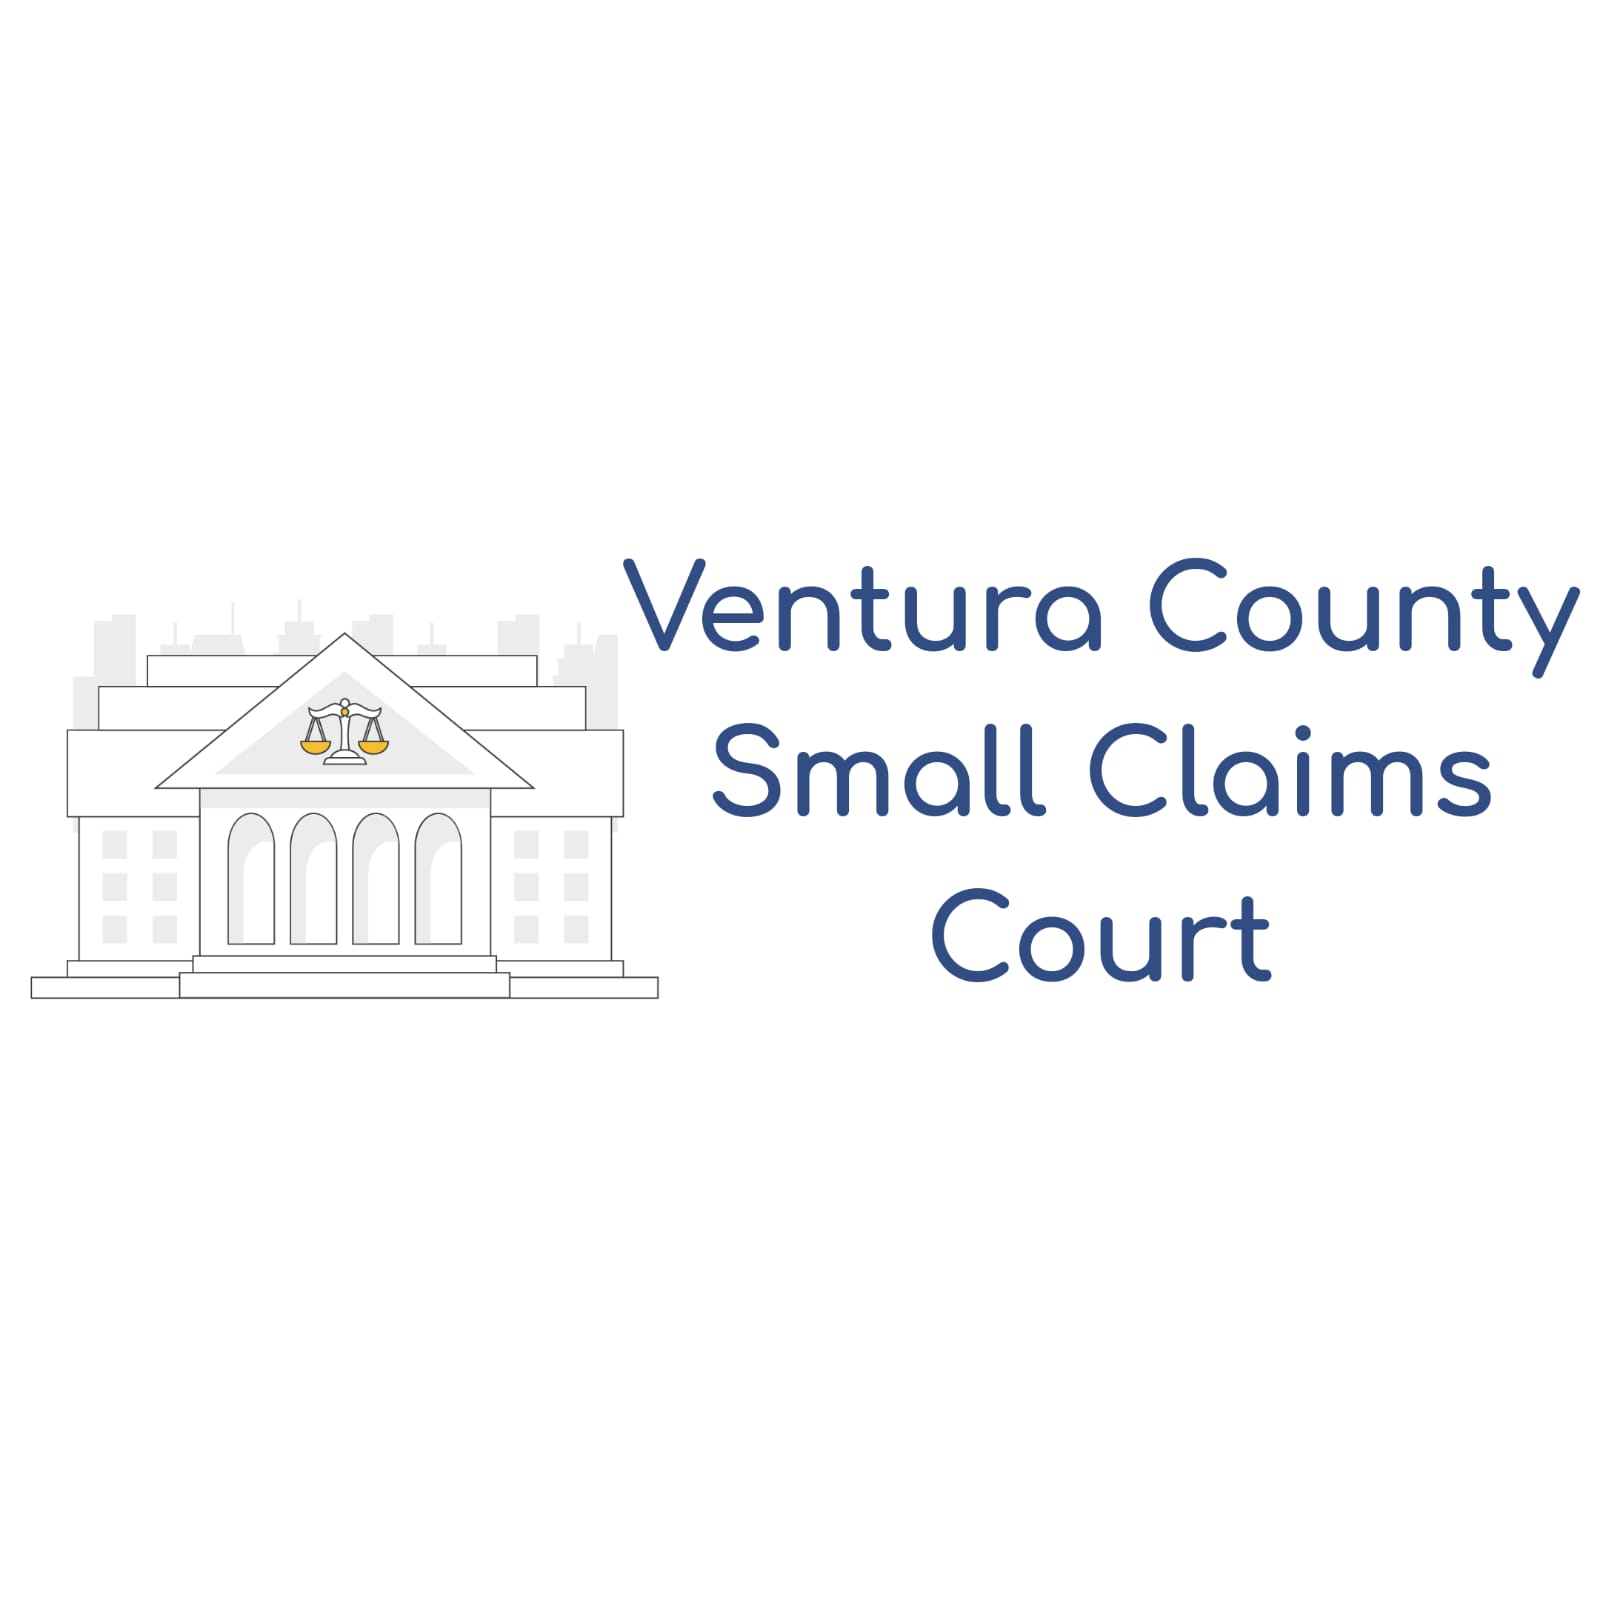 Ventura County Small Claims Court